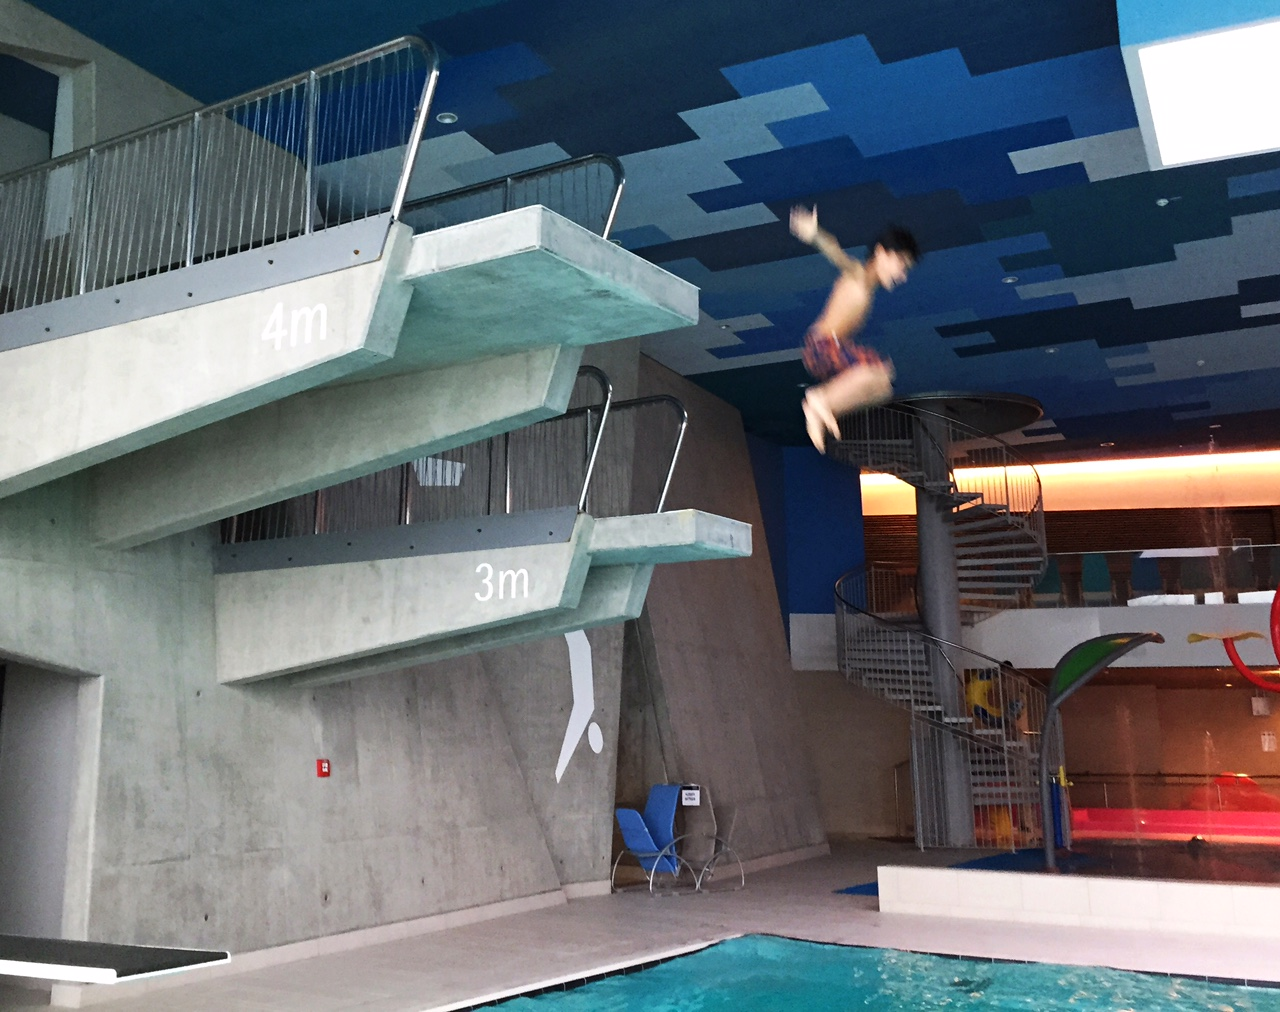 Therme wien diving board